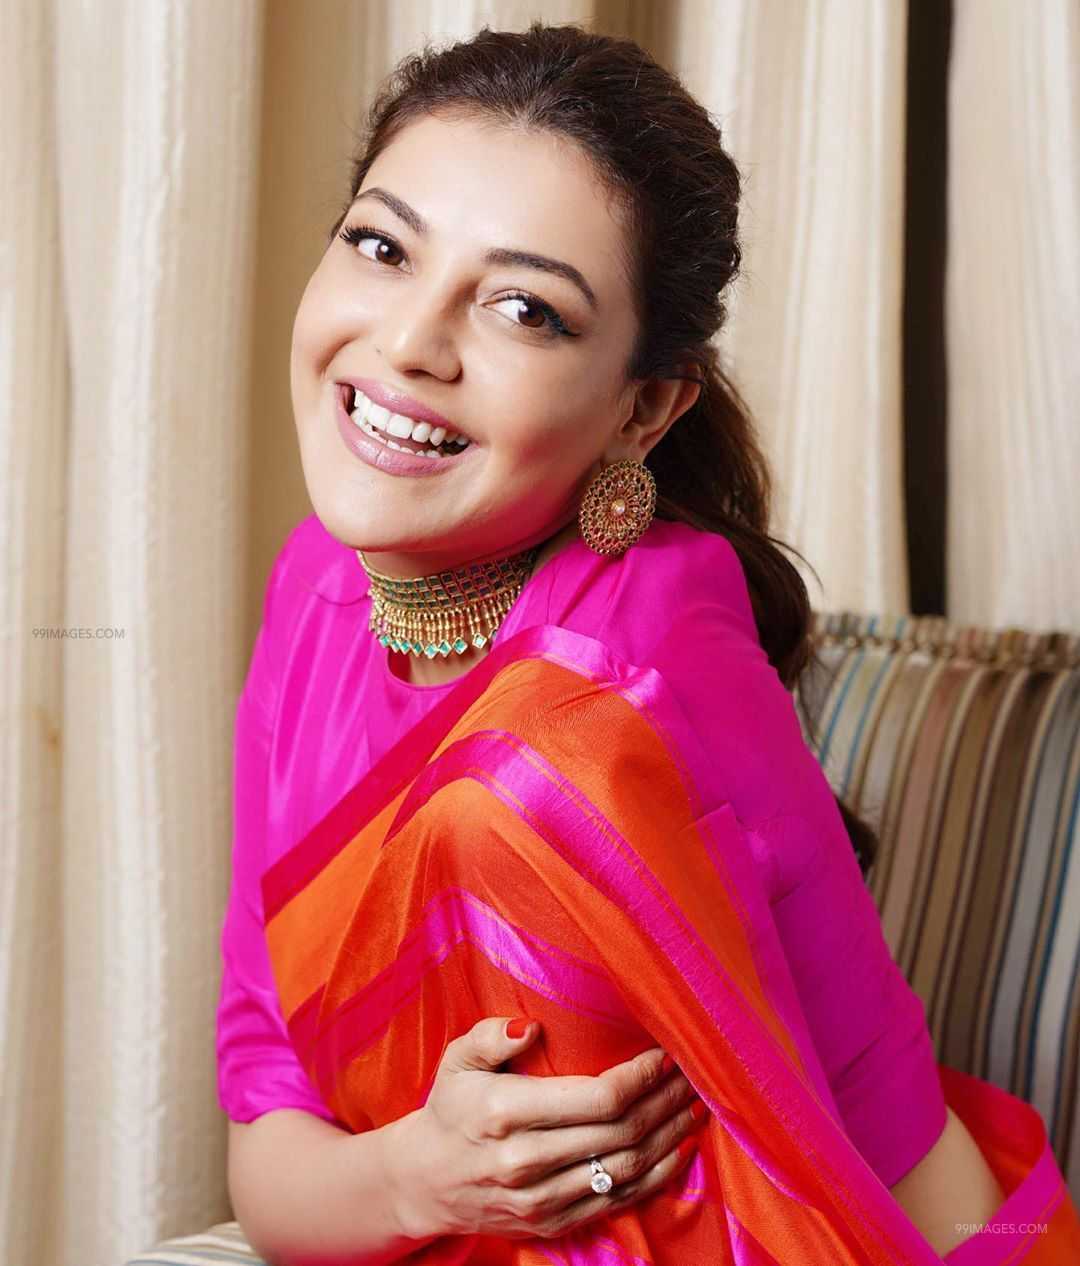 Kajal Agarwal Latest Hot HD Photoshoot Photos / Wallpapers in Saree, WhatsApp DP (1080p) (74885) - Kajal Agarwal